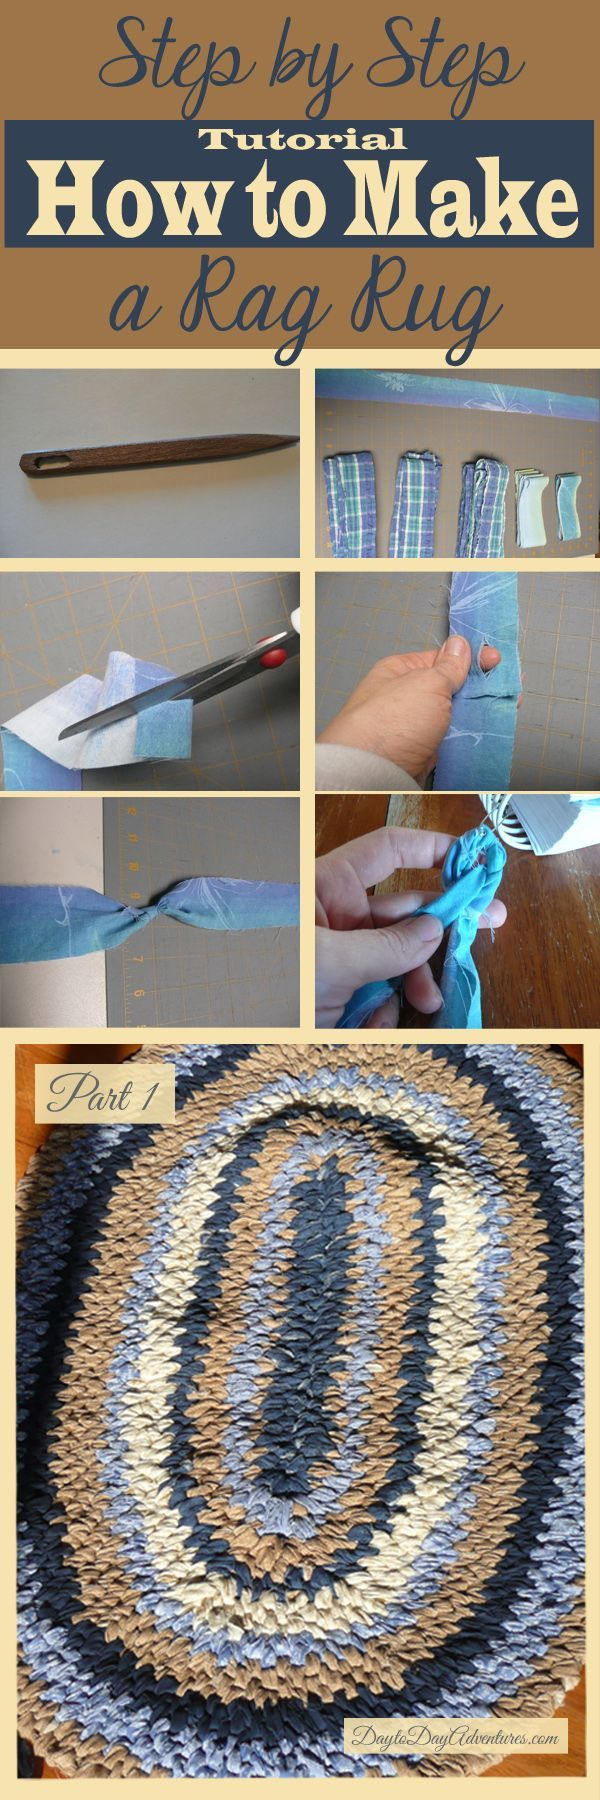 Fabric Rug Making Best 25 Rag Rug Tutorial Ideas On Pinterest Rag Rugs Homemade